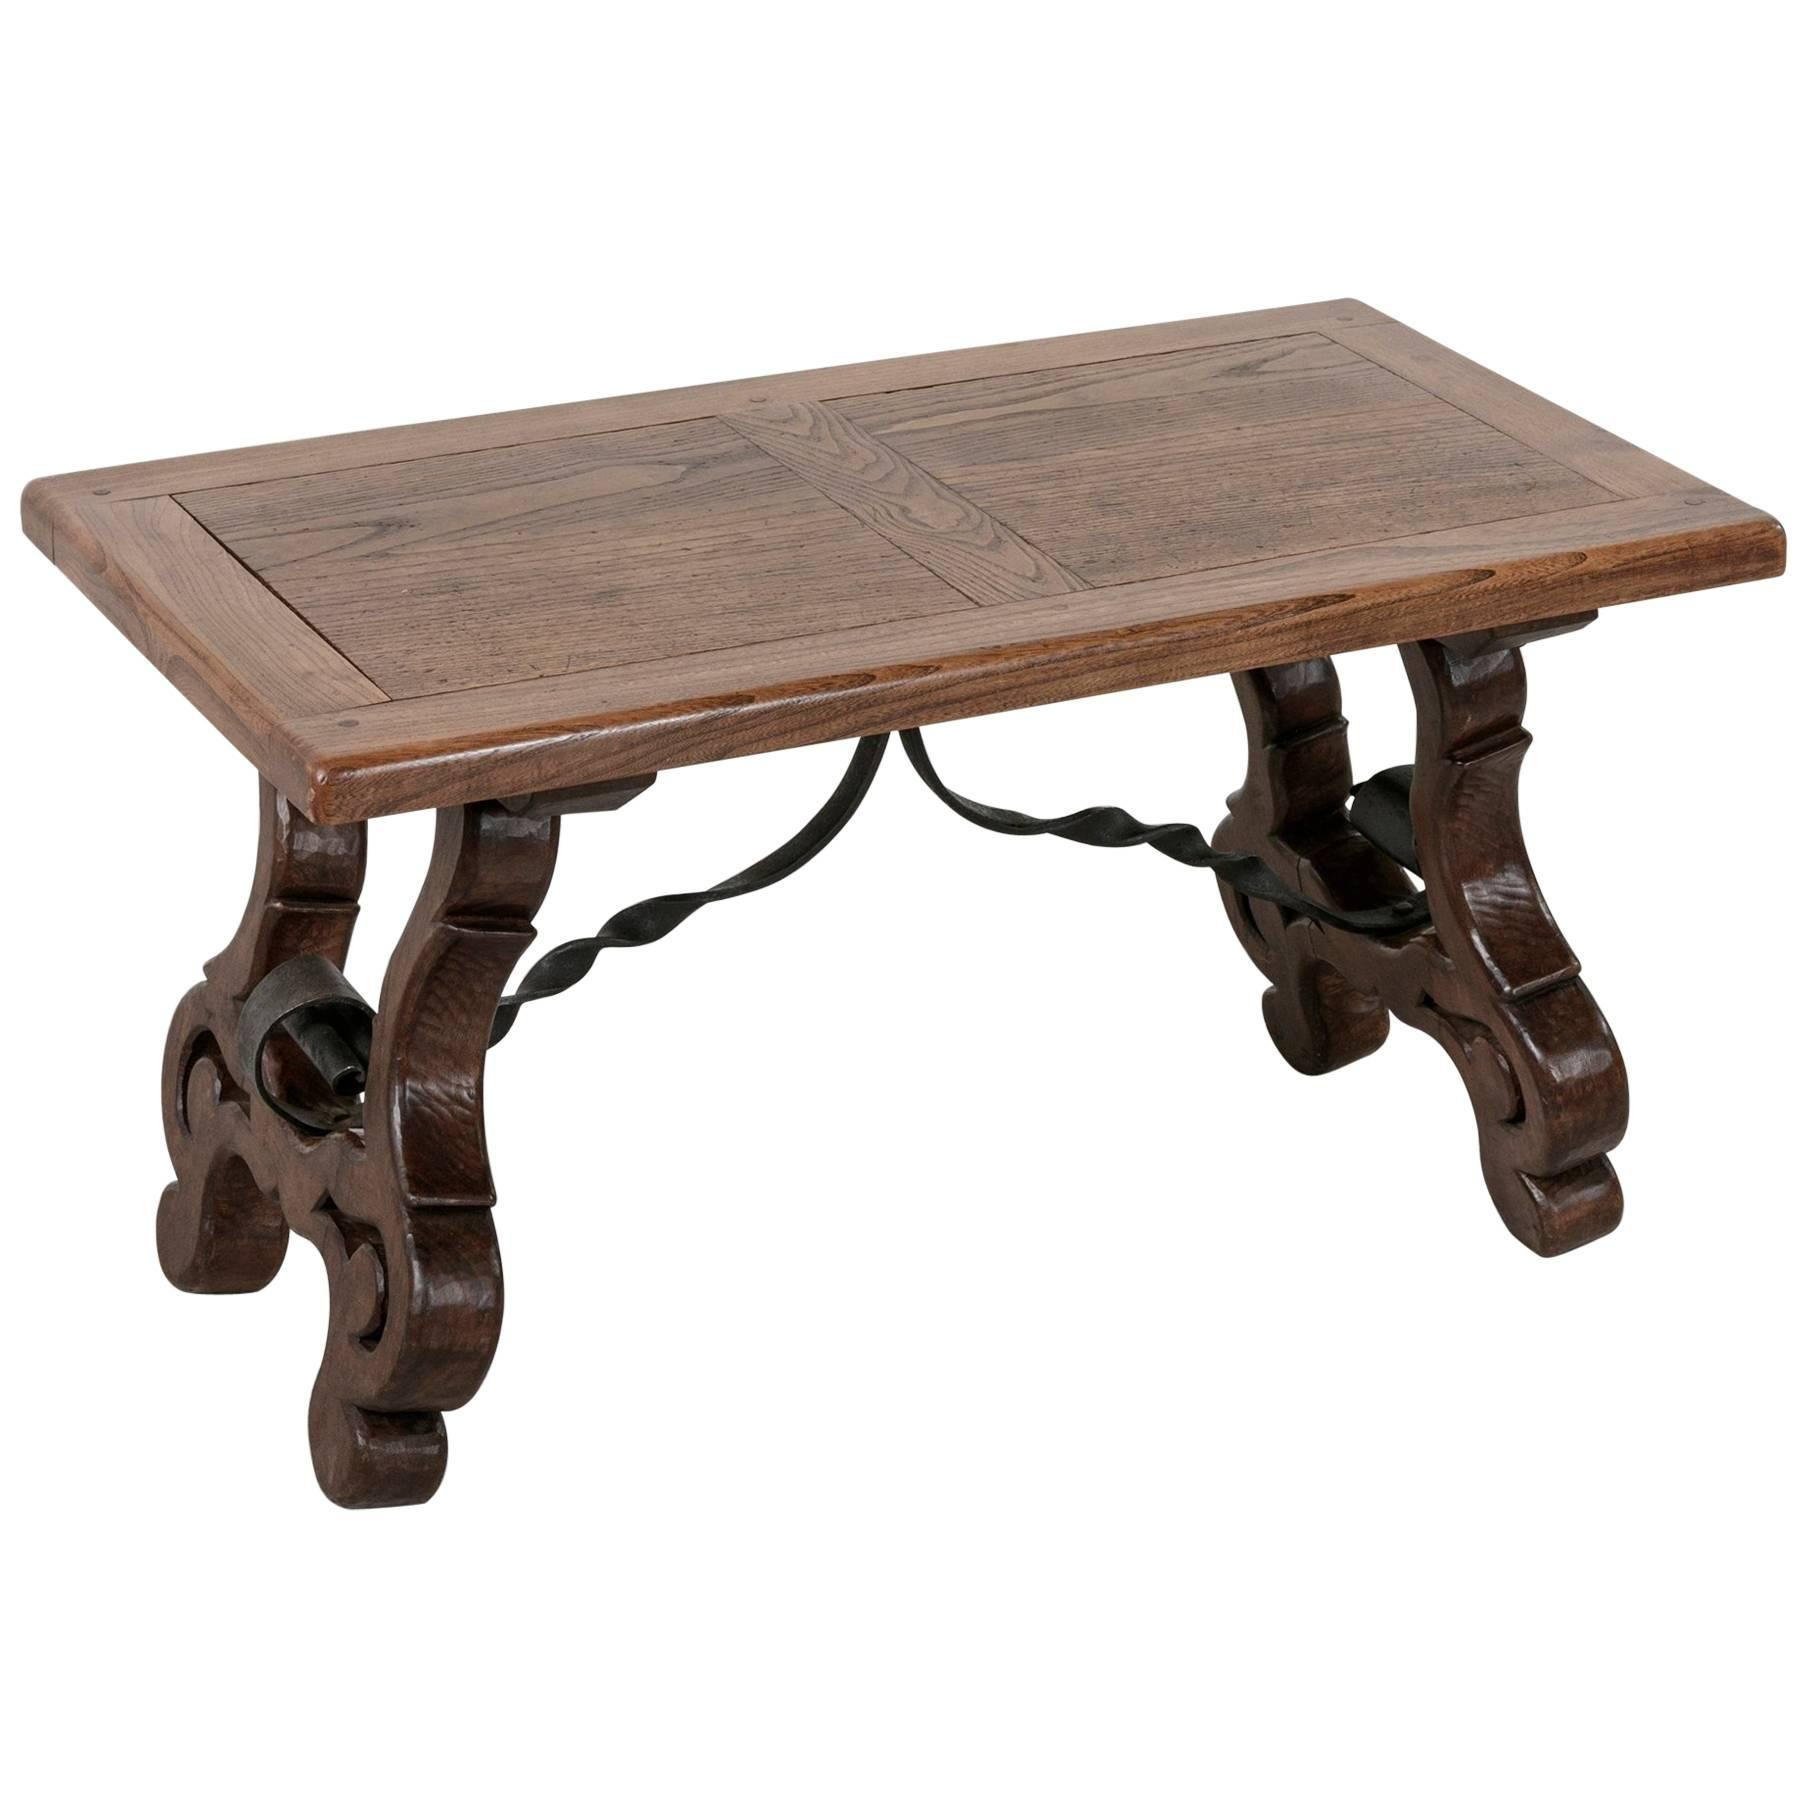 Early 20th Century Spanish Style Oak Coffee Table Or Bench With Iron  Stretcher For Sale